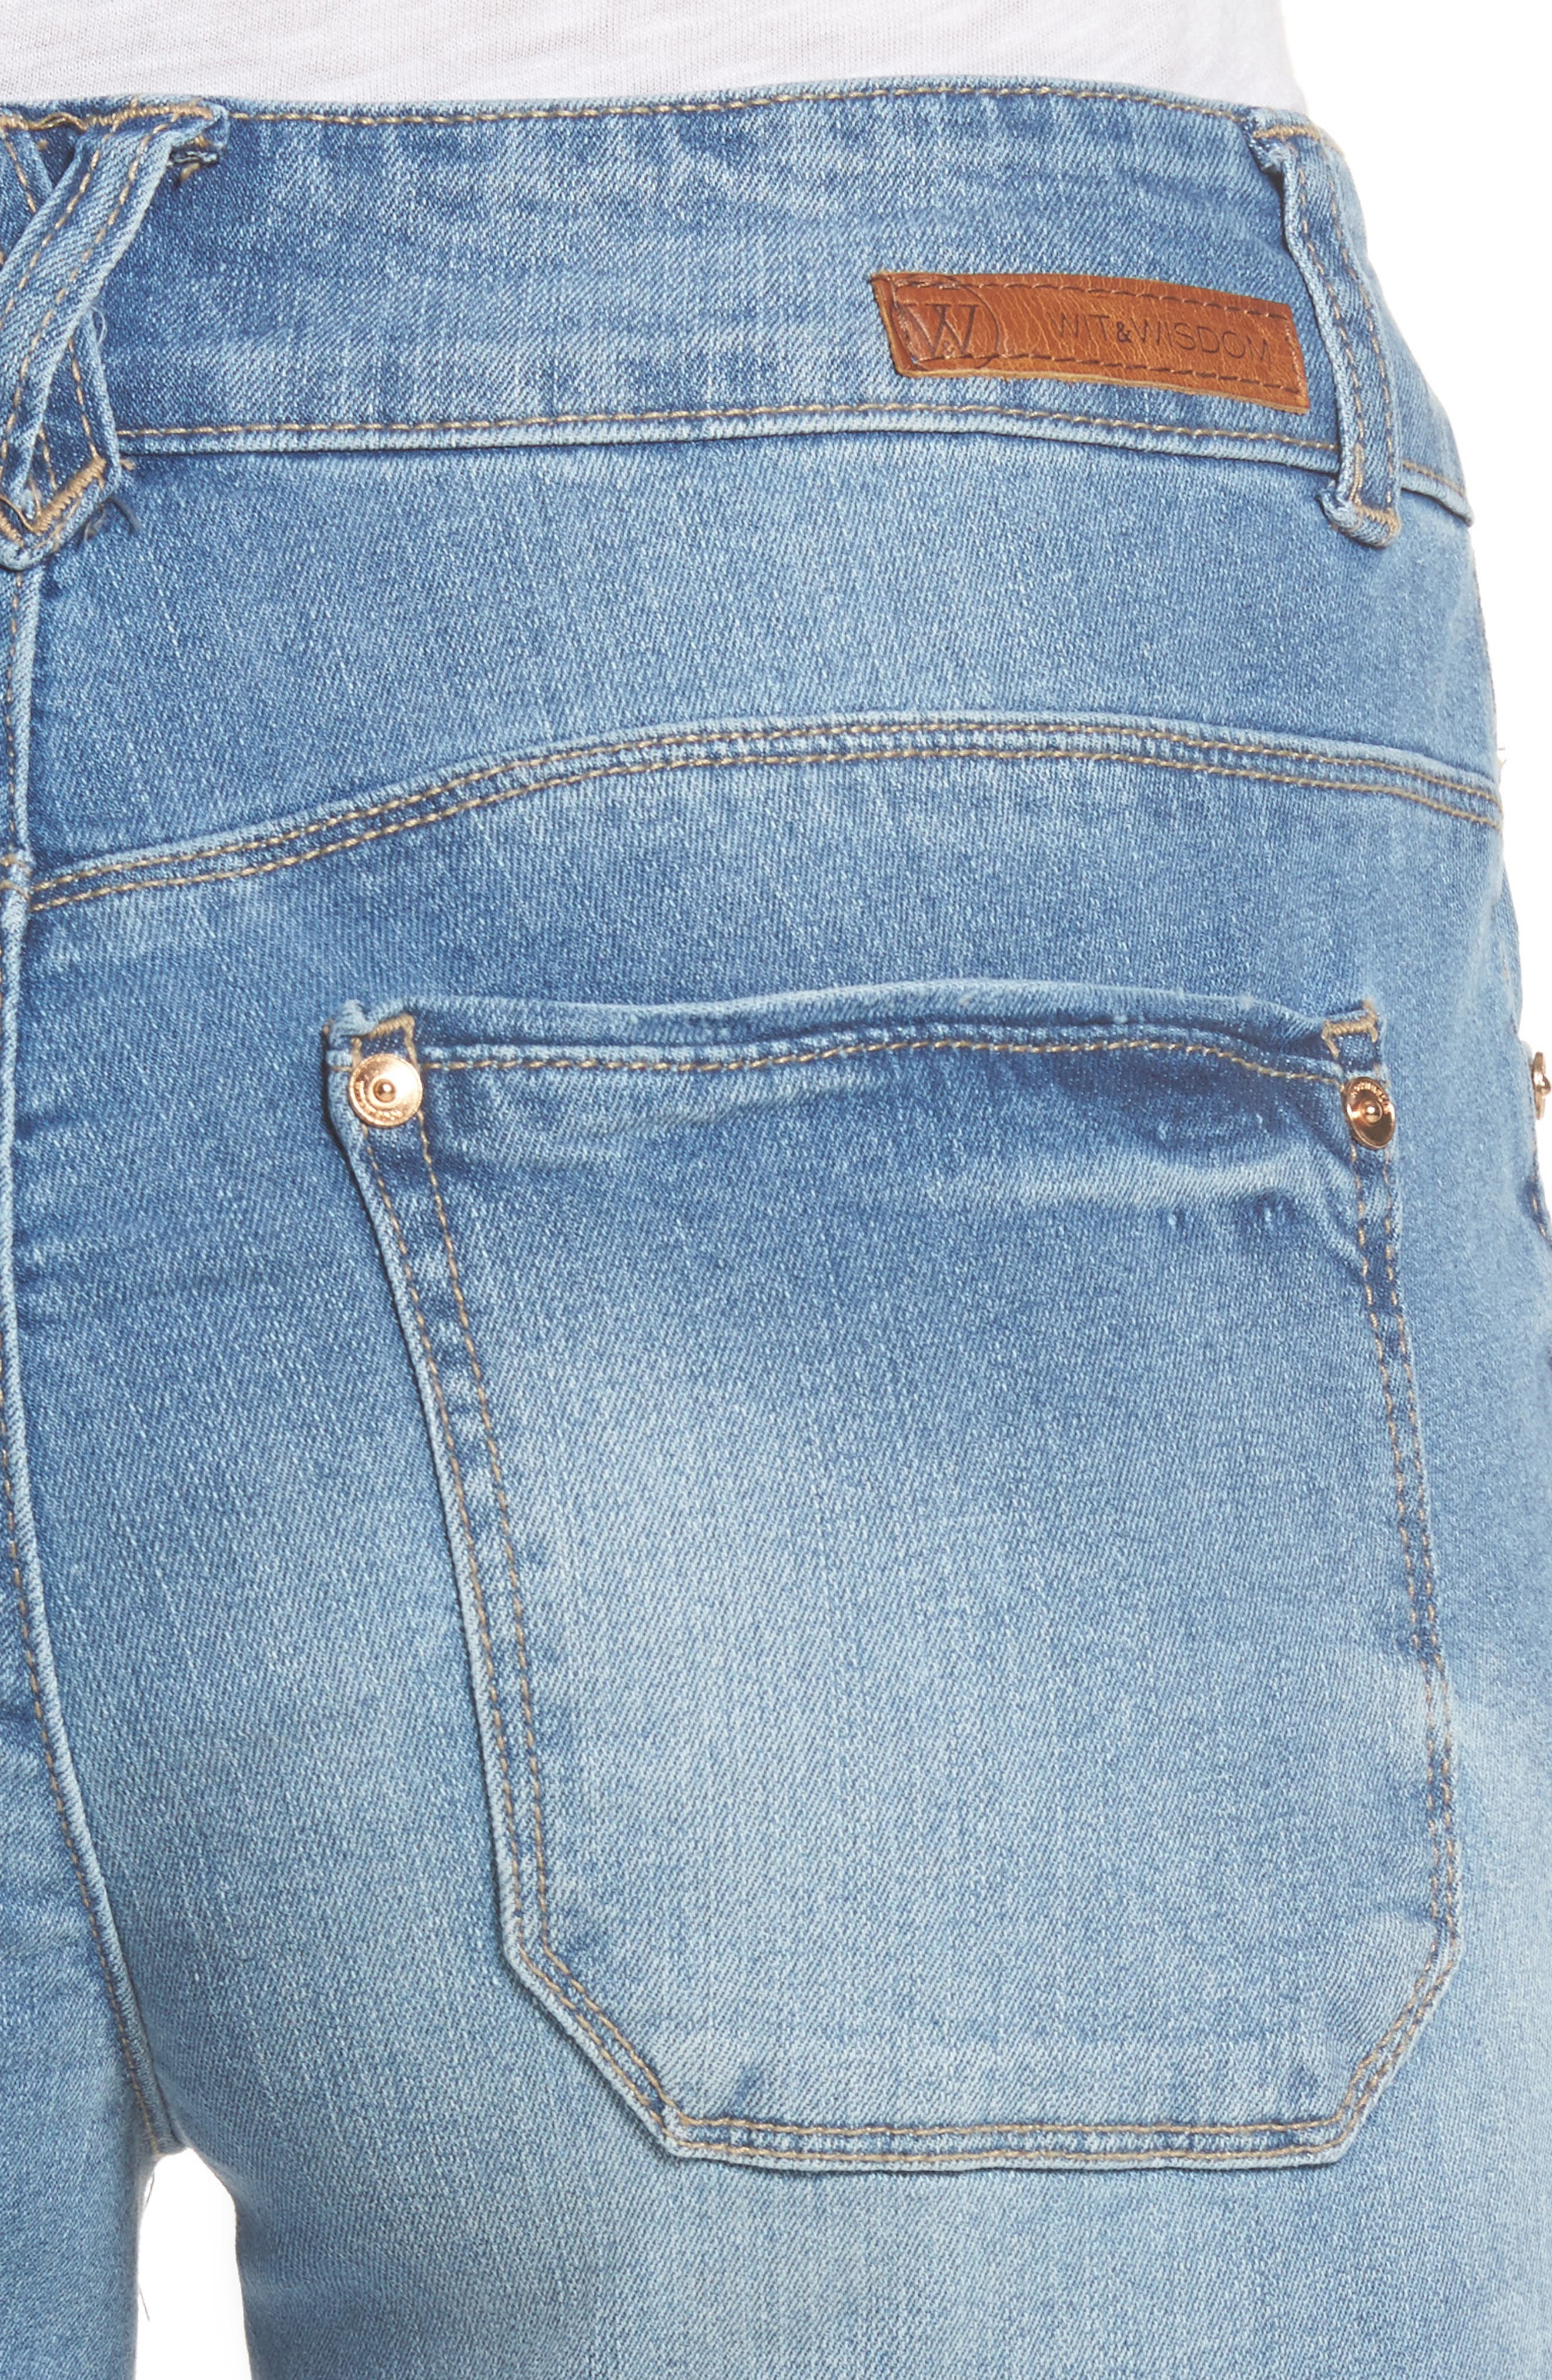 Two-Button High Waist Skinny Jeans,                             Alternate thumbnail 8, color,